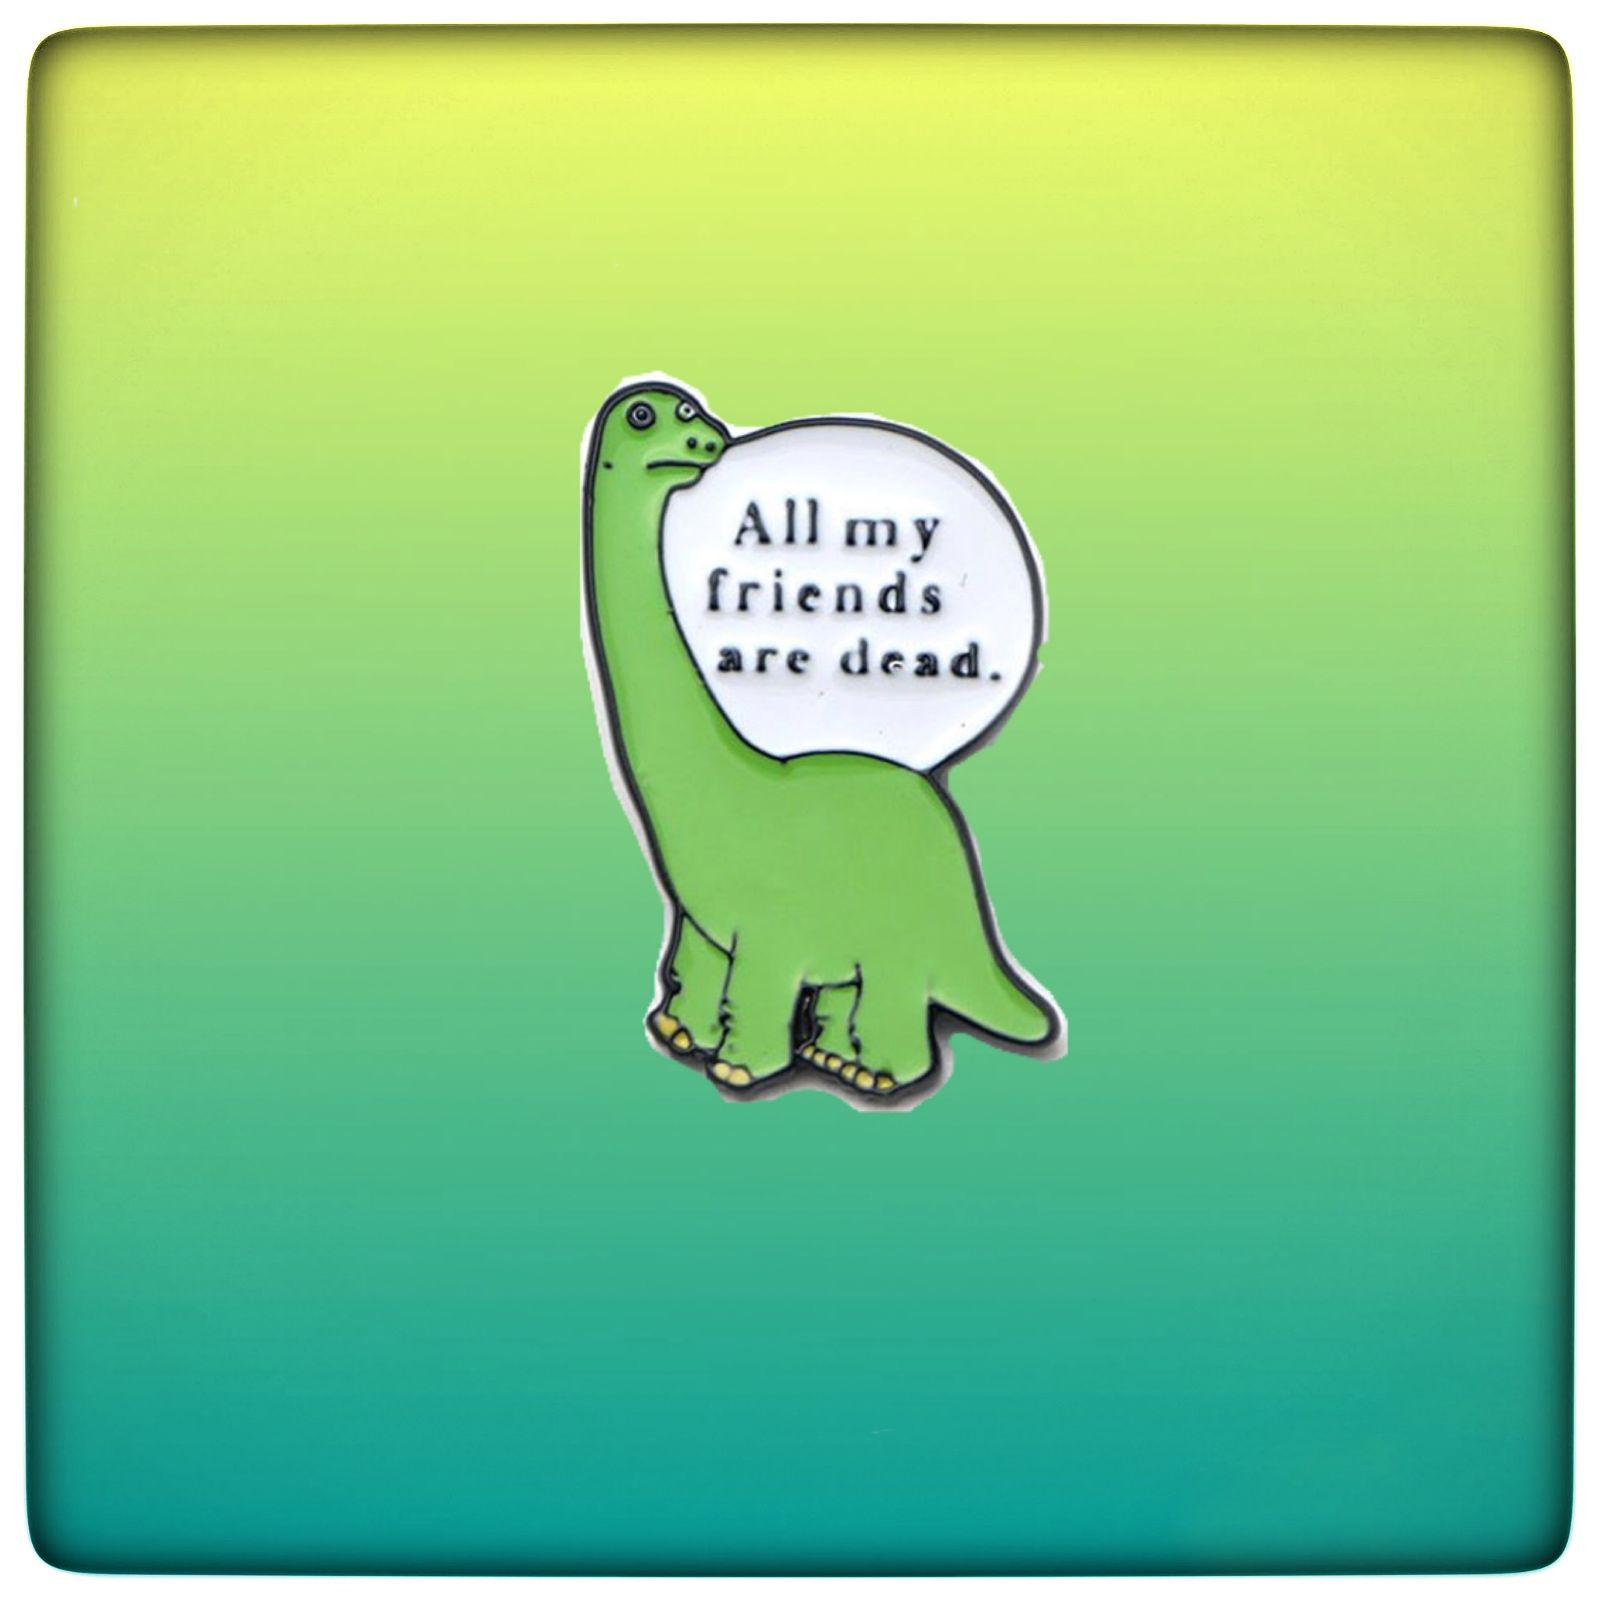 All My Friends Are Dead Dinosaur Enamel Pin Pin And Patches